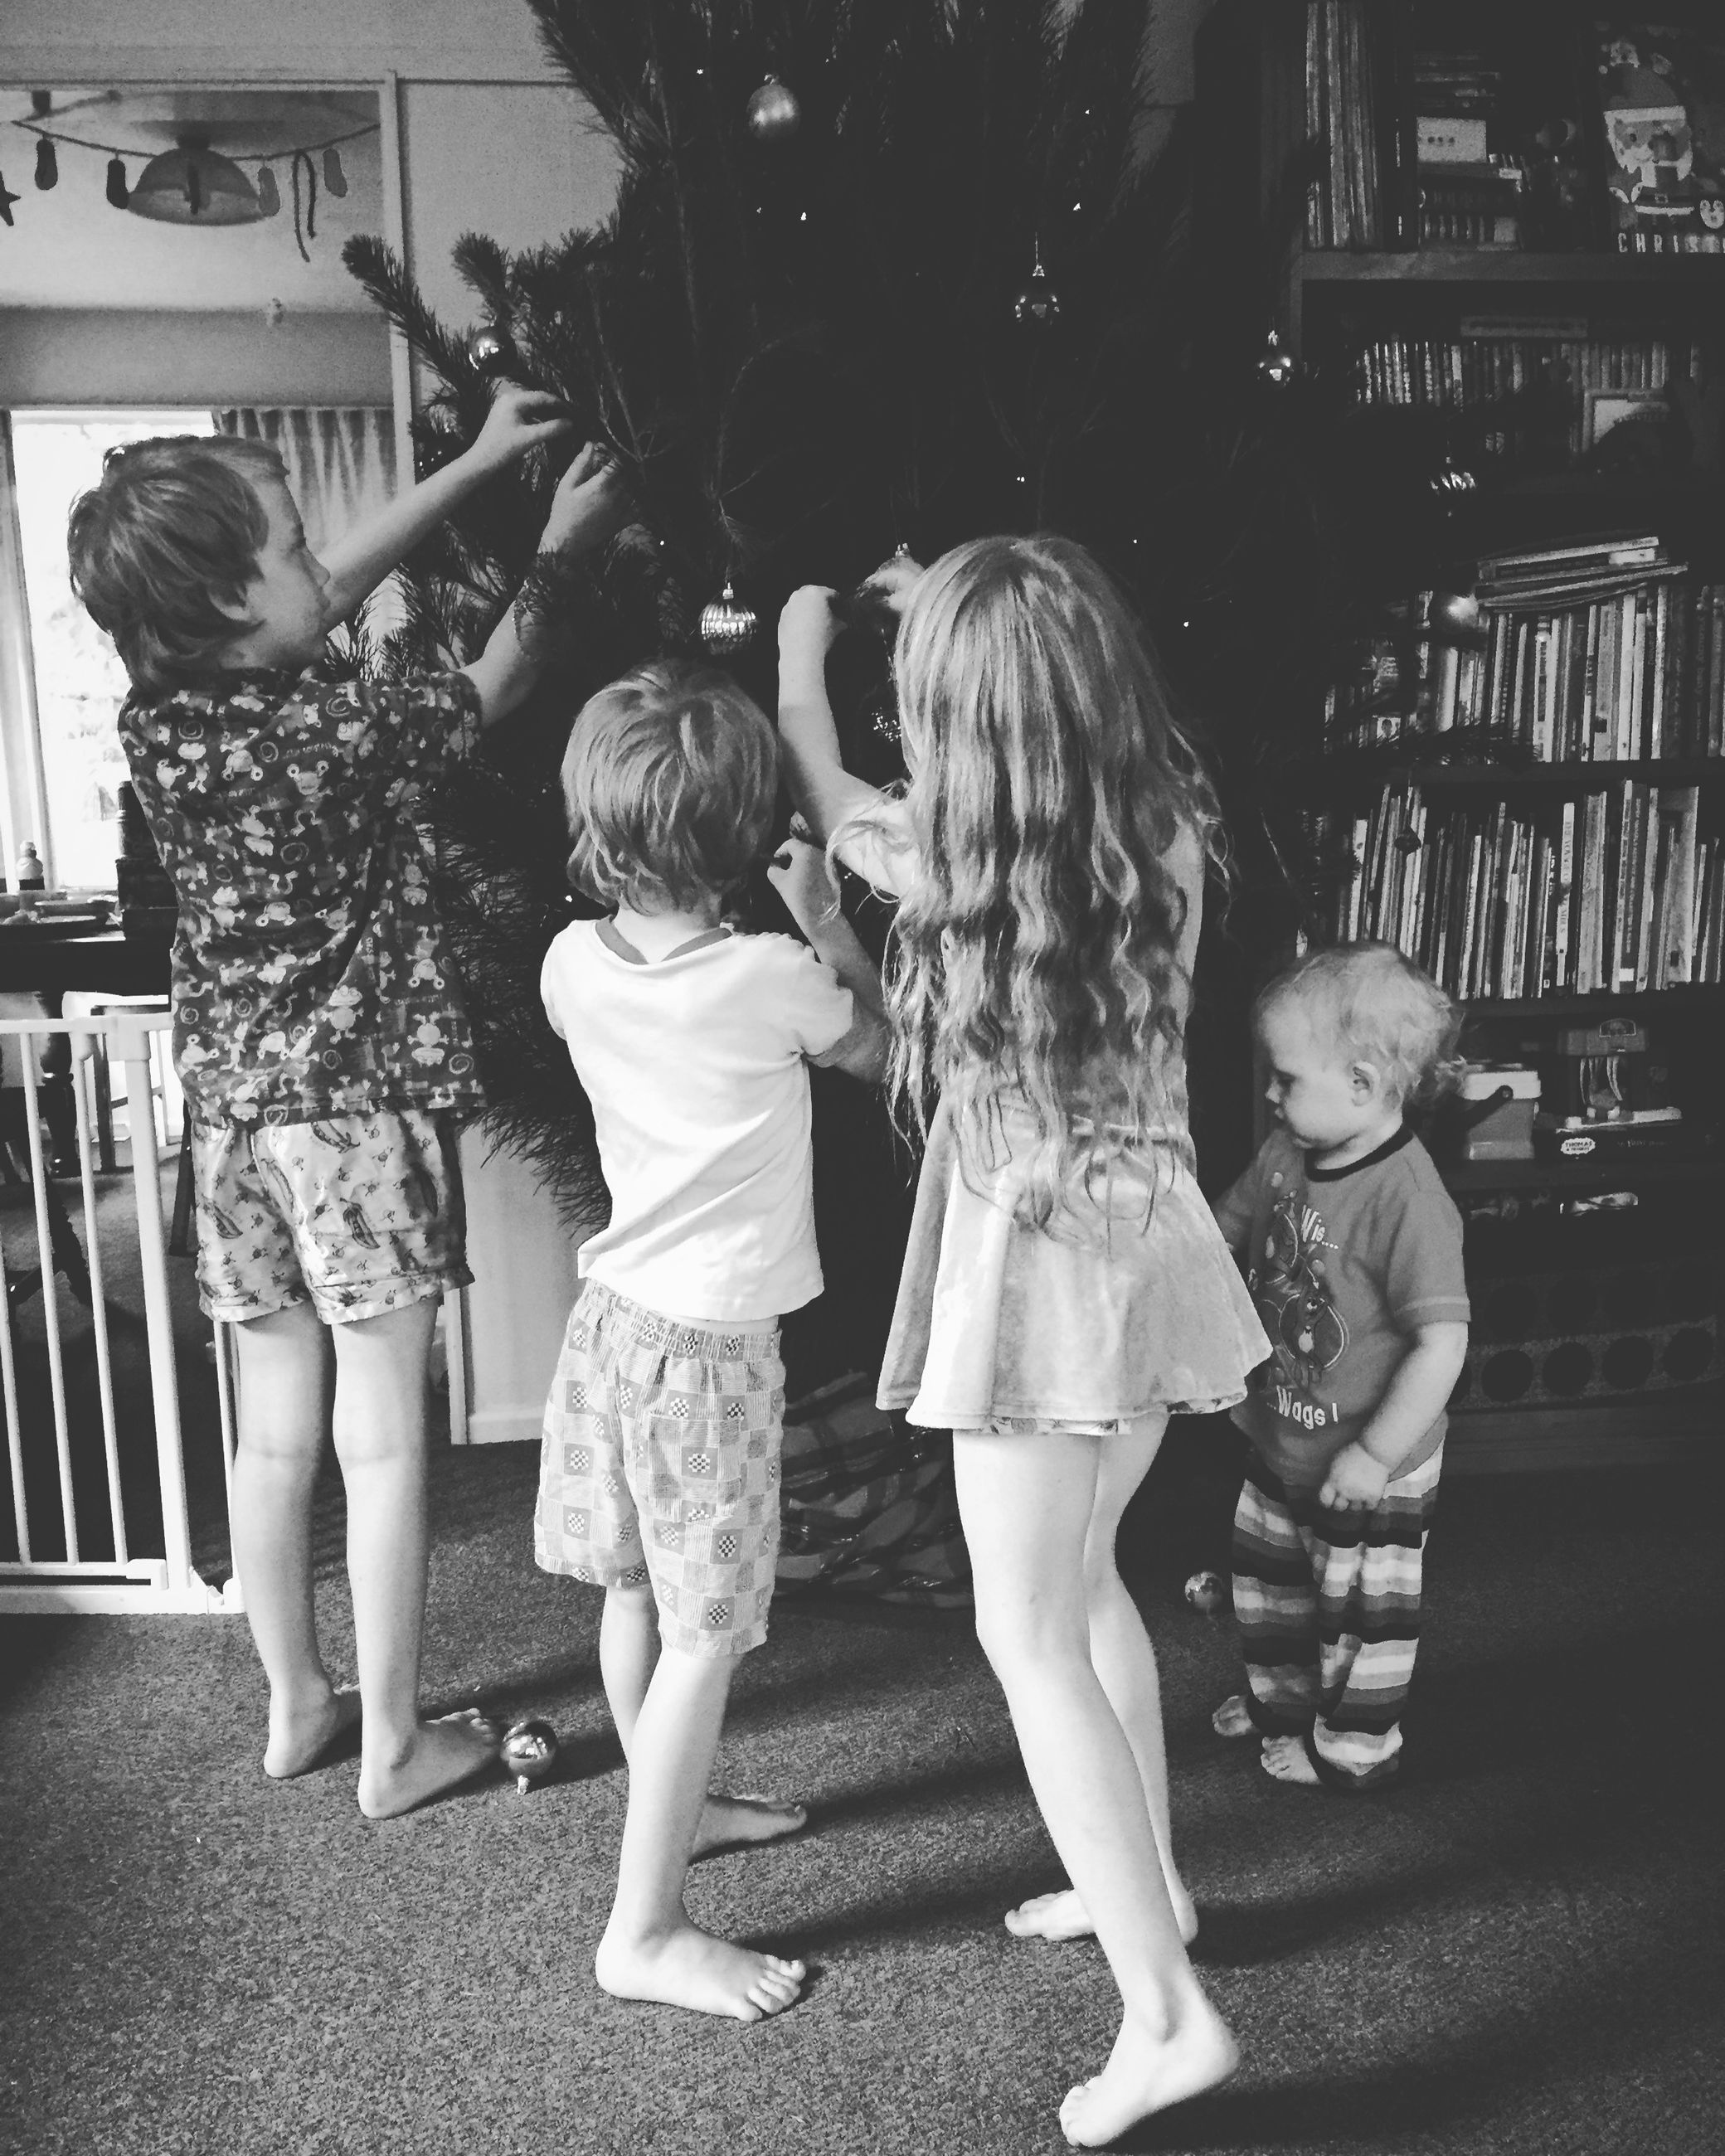 lifestyles, togetherness, full length, casual clothing, childhood, bonding, love, leisure activity, girls, elementary age, rear view, boys, family, street, family with one child, innocence, sibling, person